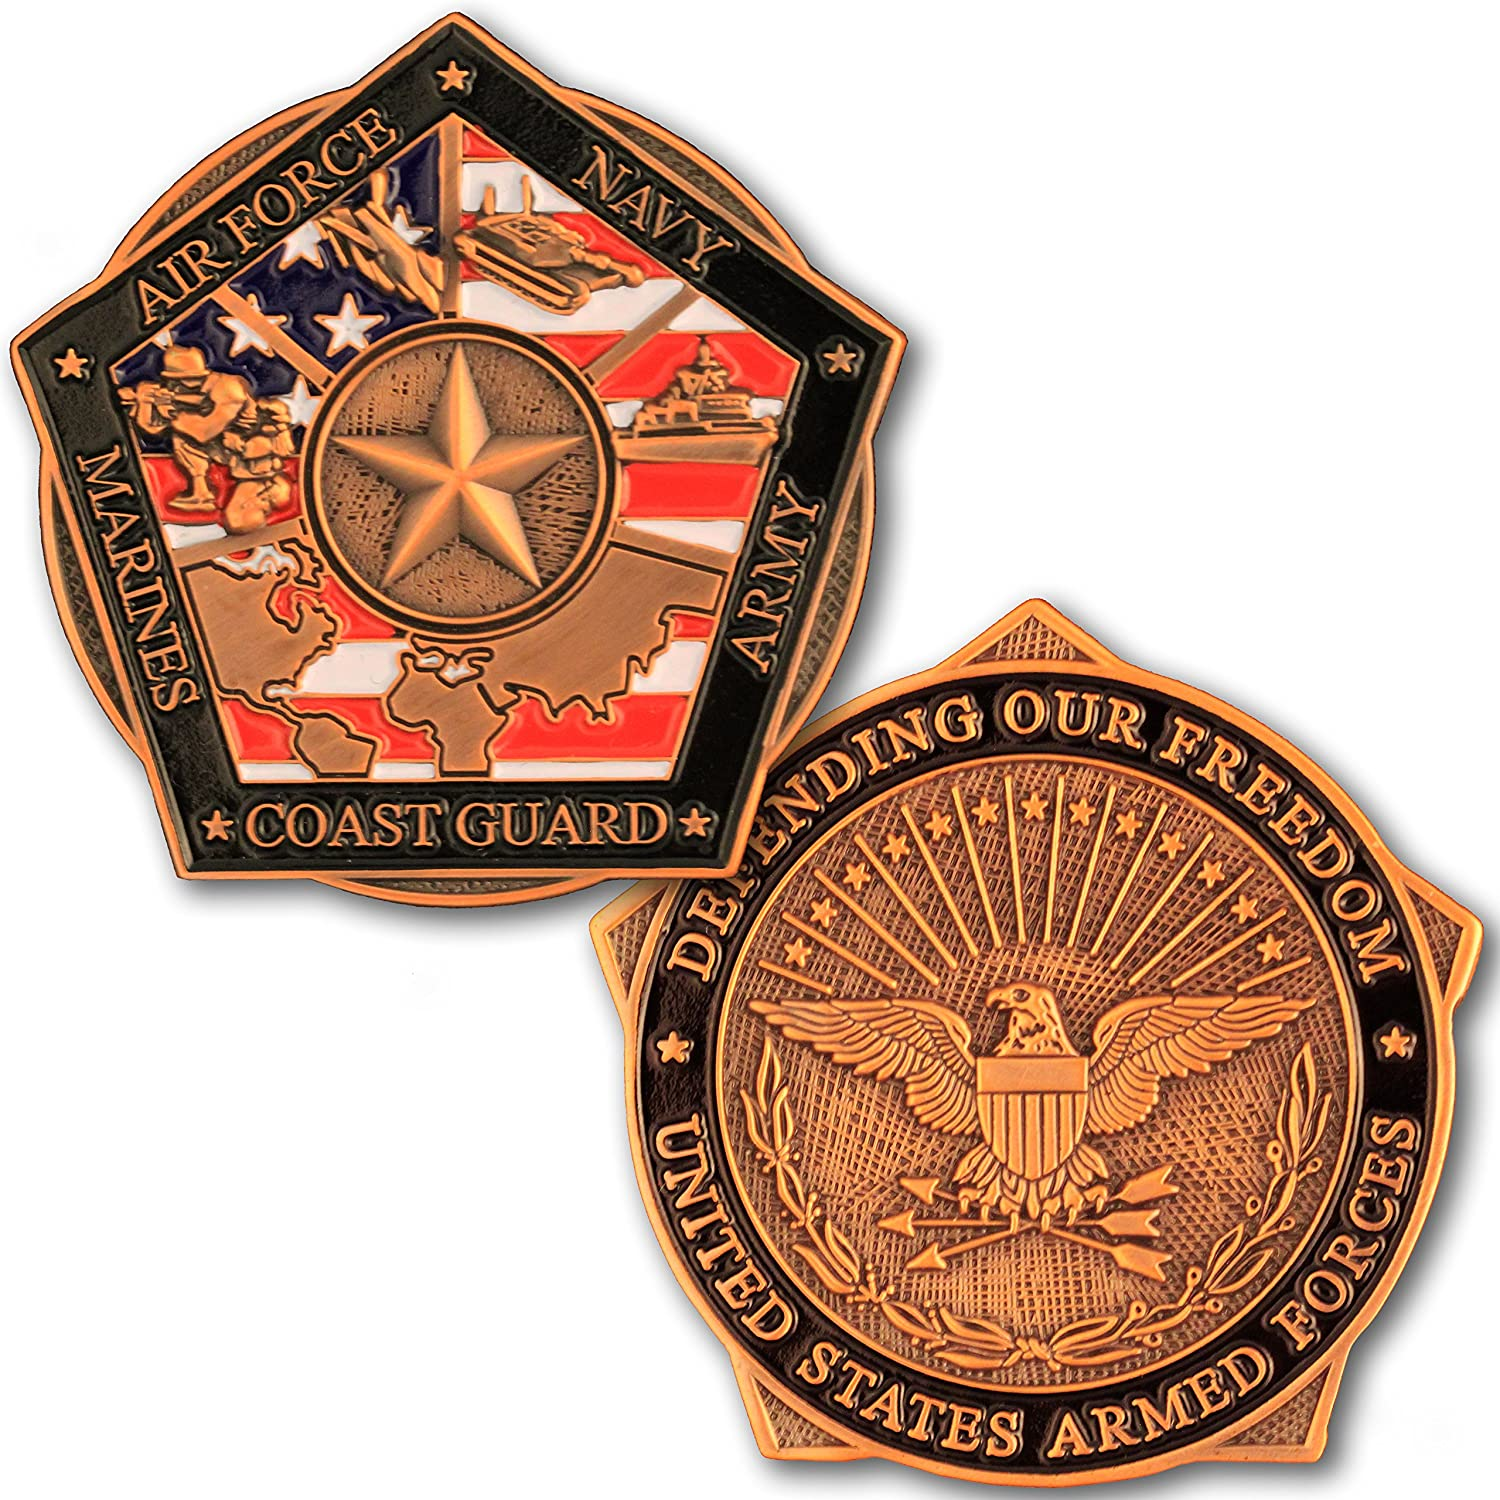 Armed Forces Honor Troops Challenge Coin, Military Support Coin. Die Struck Brass Challenge Coin Designed by Military Veterans! Marines Corps, Navy, Army, Air Force, Coast Guard Challenge Coin! Coins For Anything Inc